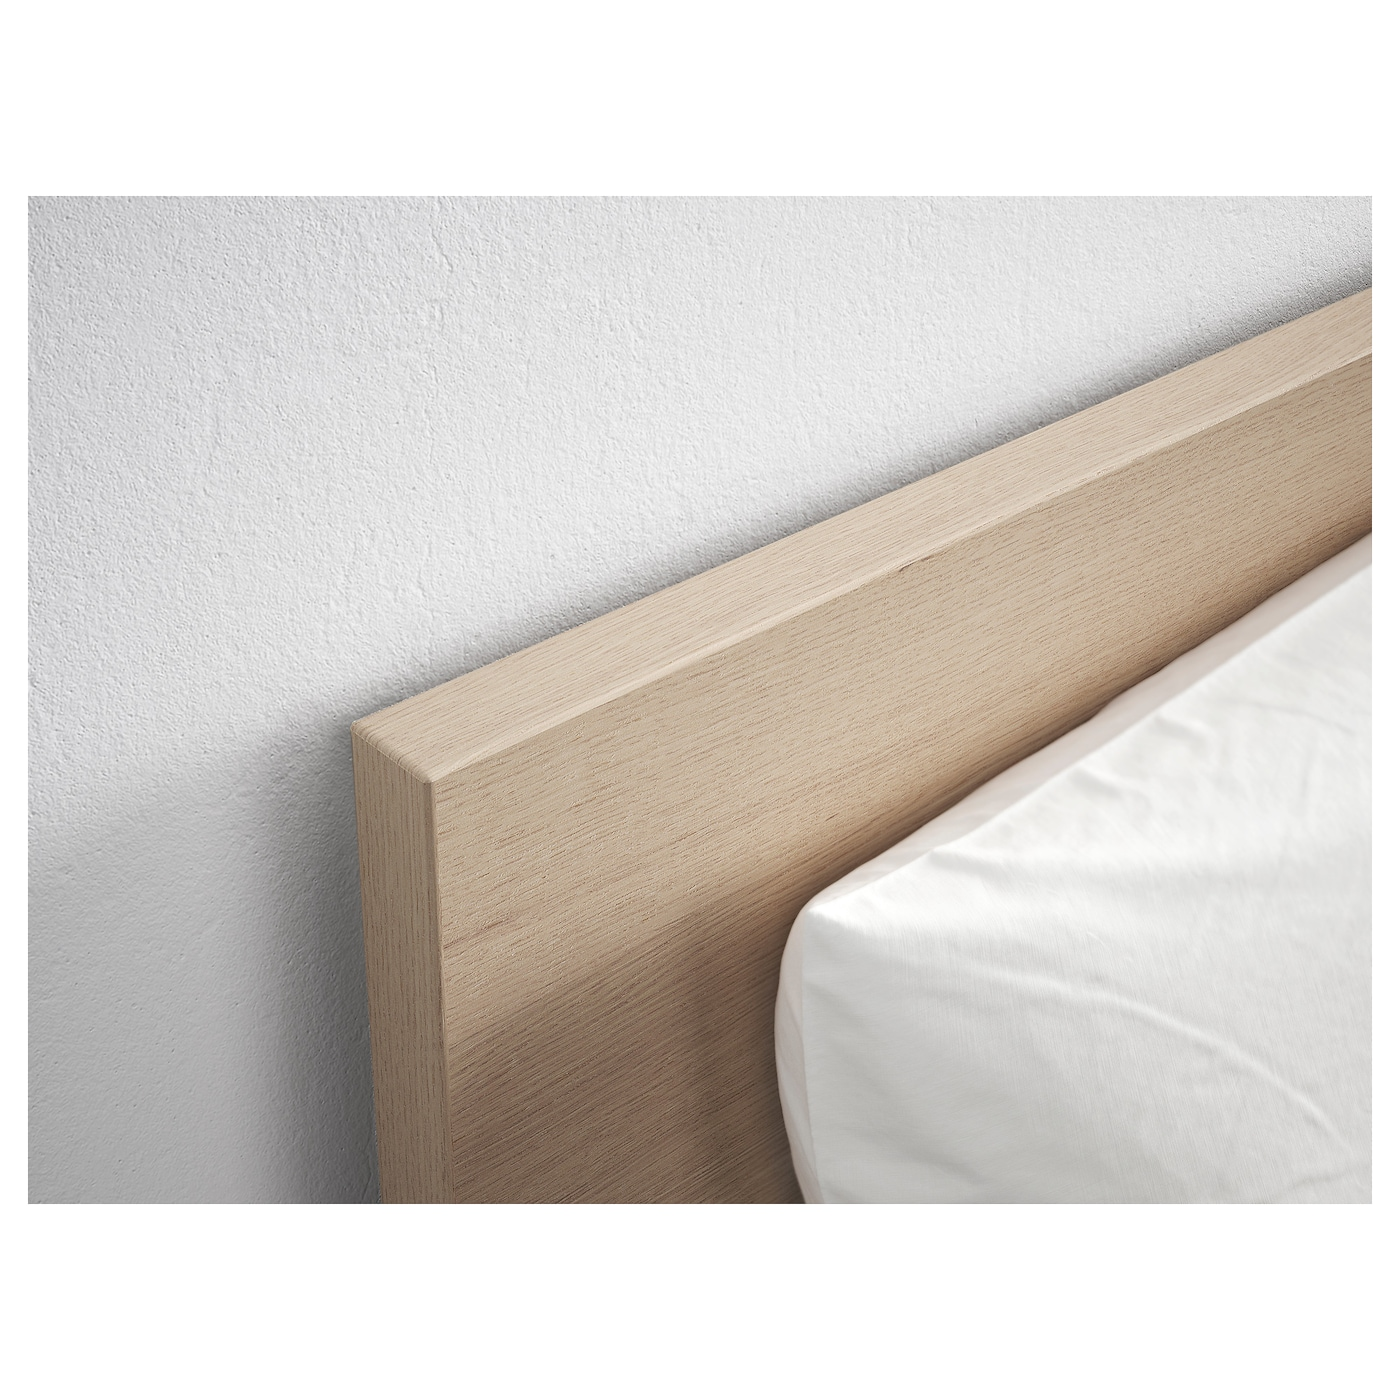 malm bed frame, high white stained oak veneer/leirsund 180x200 cm, Hause deko